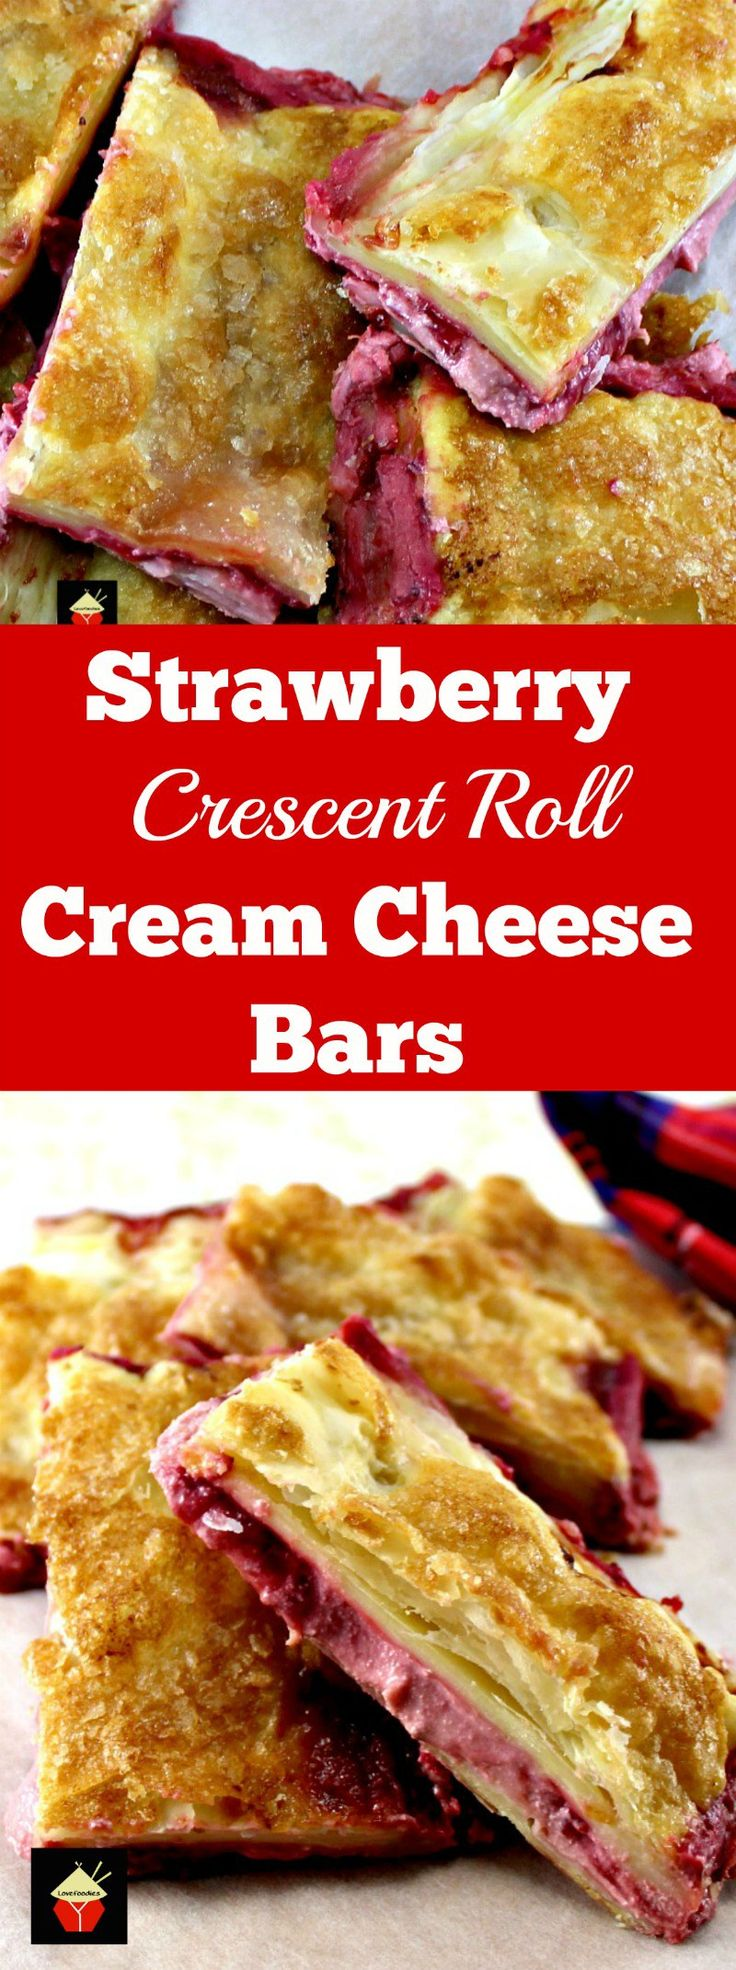 Strawberry Crescent Roll Cheesecake Bars. An incredibly easy and fuss free recipe with cream cheese and strawberry filling sandwiched between layers of pastry. This tastes amazing! | Lovefoodies.com